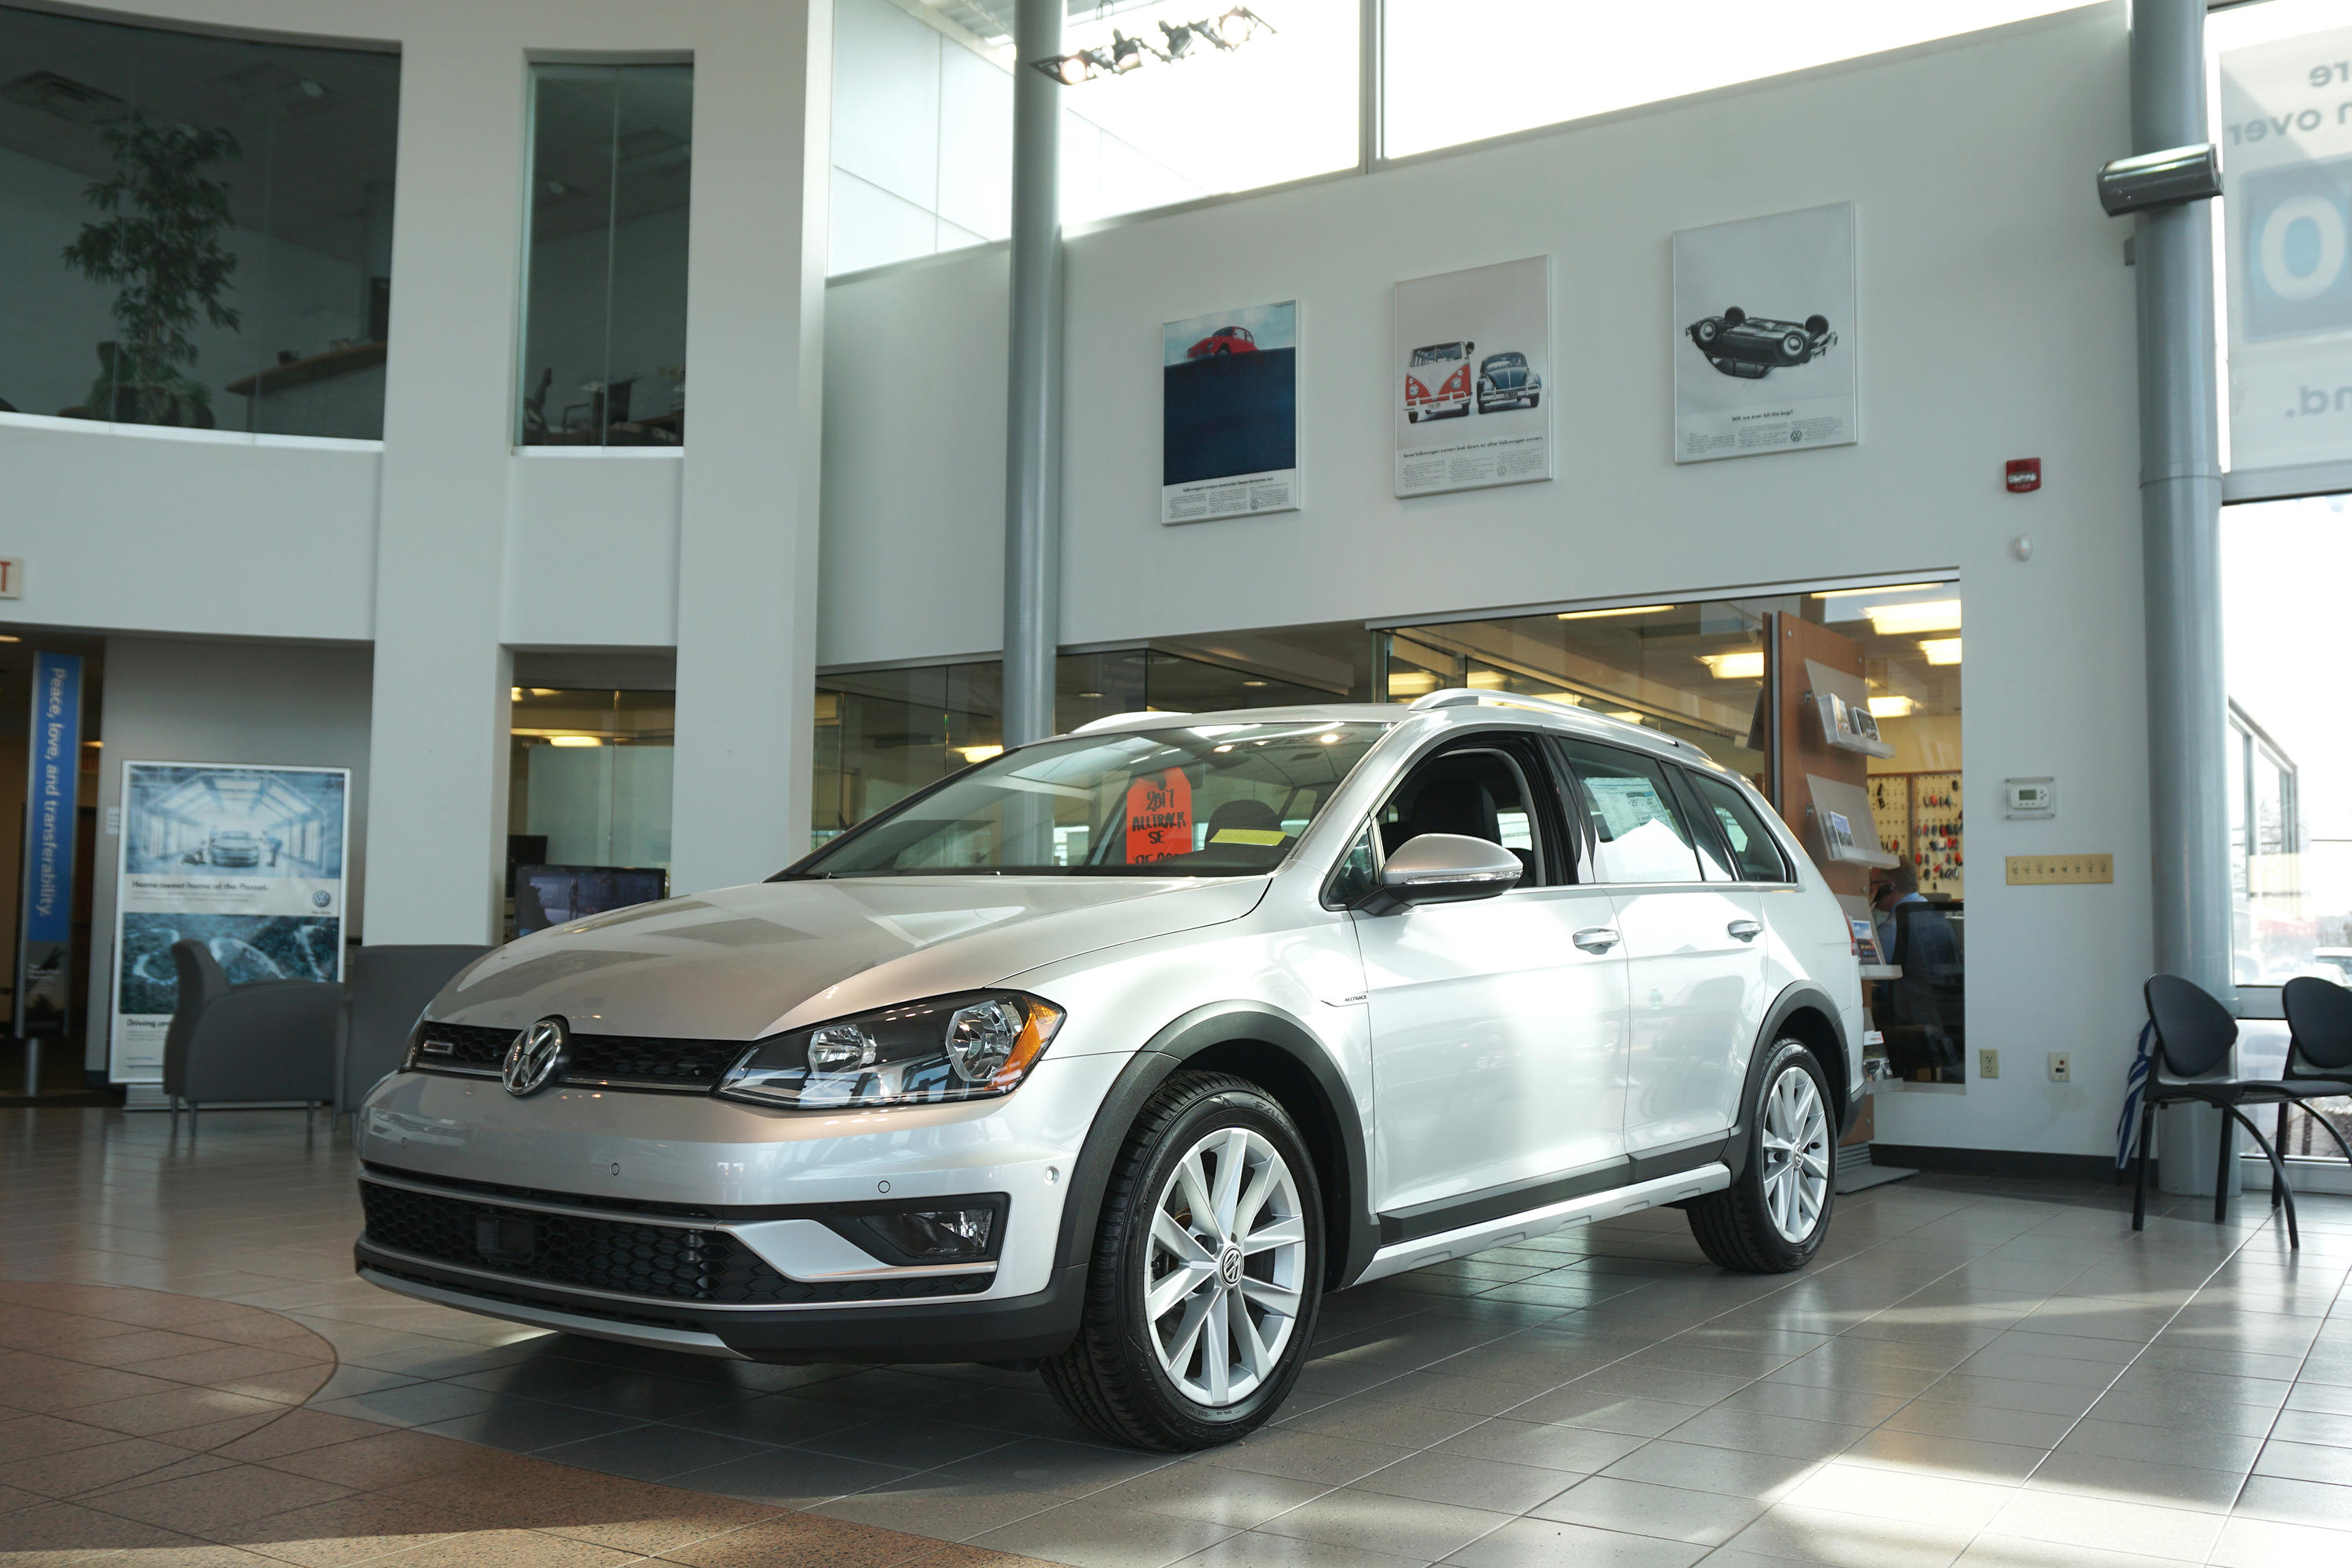 sale cars for ky passat com in and img auto used louisville new volkswagen